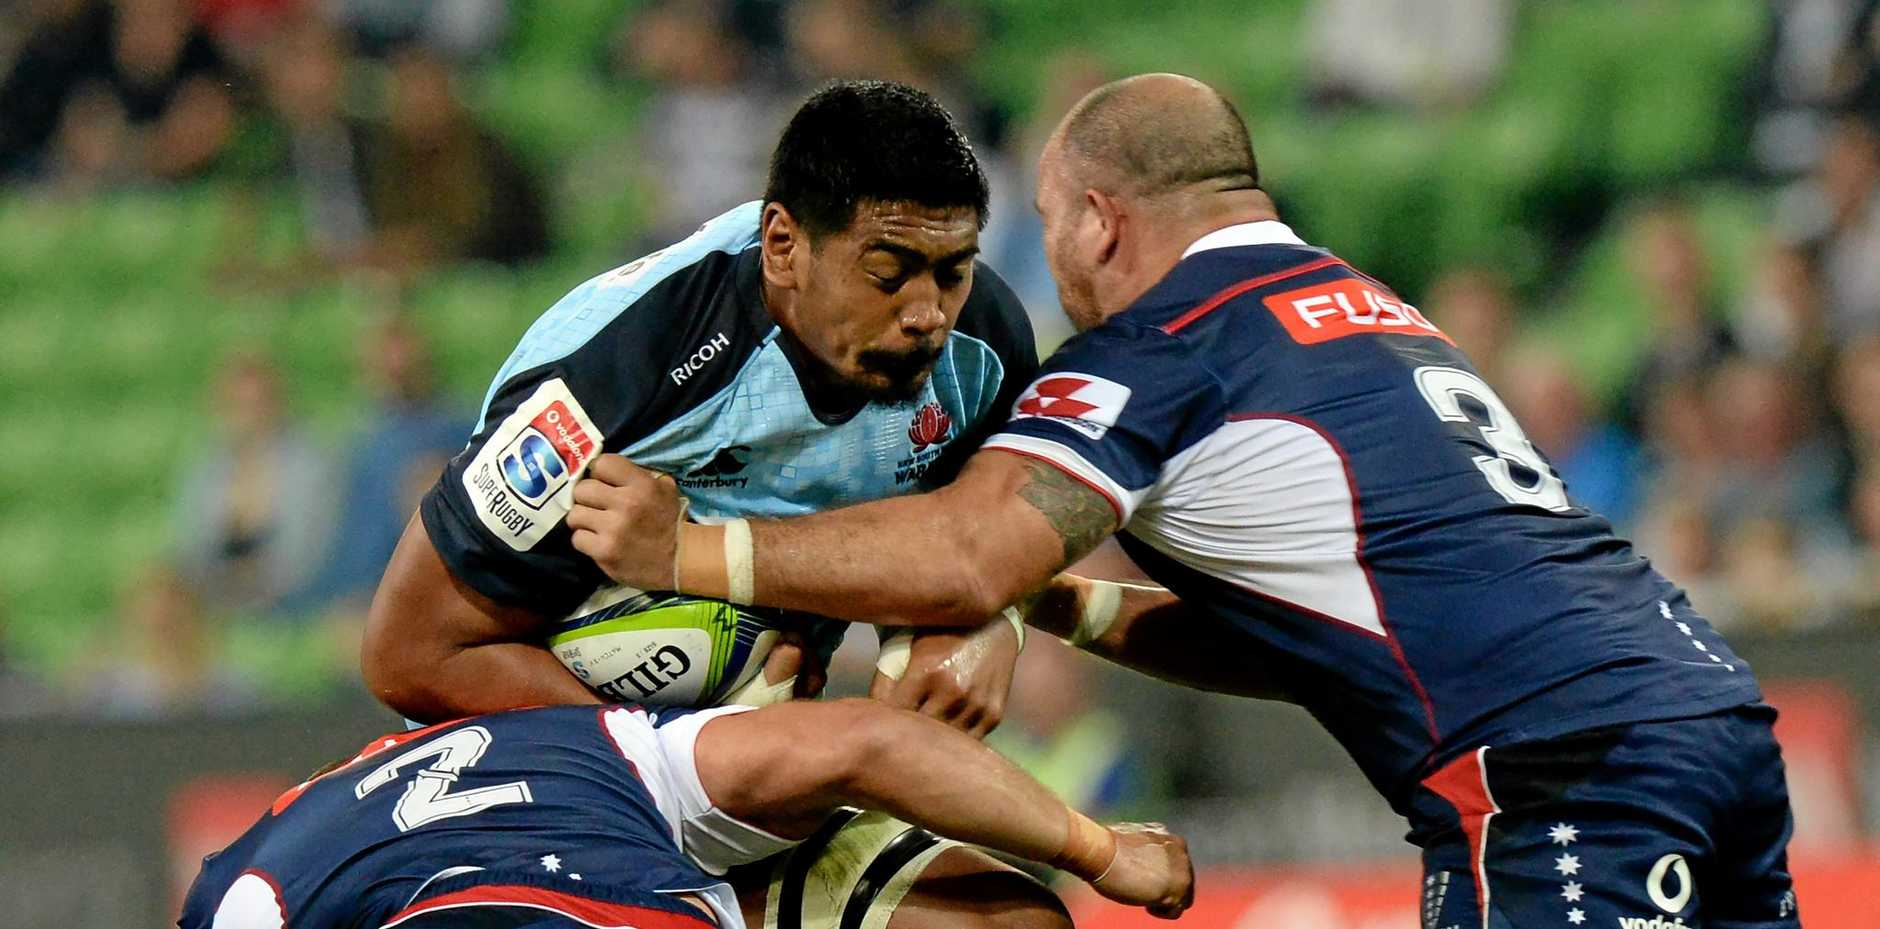 Waratahs Will Skelton (C) attempts to break a tackle from James Hanson (L) and Laurie Weeks (R) during the Round 5 Super Rugby match between the Melbourne Rebels and the NSW Waratahs at AAMI Park in Melbourne, Friday, March 24, 2017. (AAP Image/Mal Fairclough) NO ARCHIVING, EDITORIAL USE ONLY